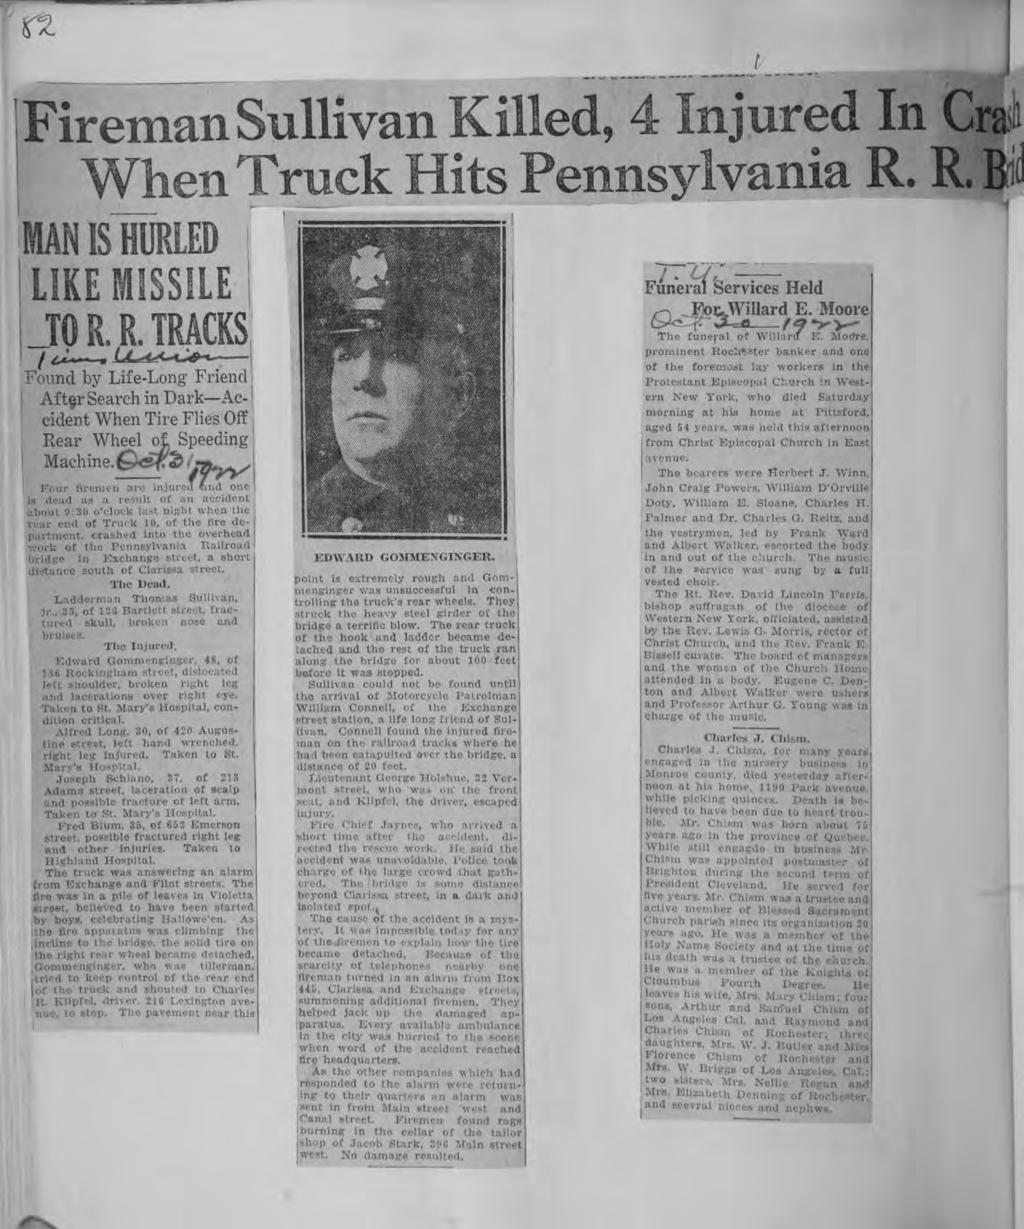 - (S a- Central Lbrary of Rochester and Monroe County Hstorc Scrapbooks Collecton Freman Sullvan MAN S HURLED LKE MSSLE 4 njured n Cras sylvana R R Bd Funeral Servces Held Moore ^>^ The funeral of